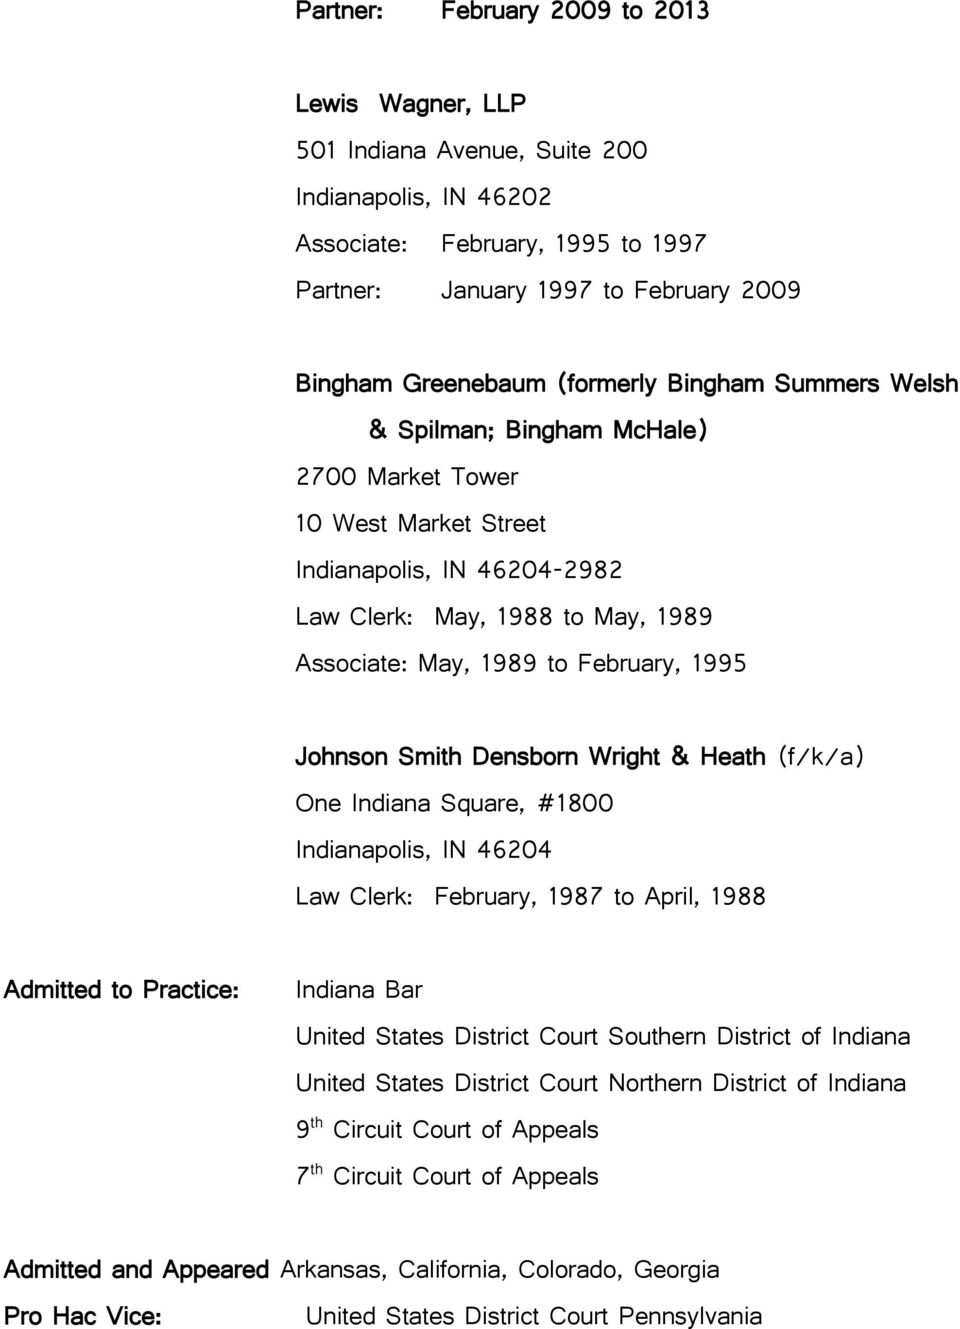 Johnson Smith Densborn Wright & Heath (f/k/a) One Indiana Square, #1800 Indianapolis, IN 46204 Law Clerk: February, 1987 to April, 1988 Admitted to Practice: Indiana Bar United States District Court